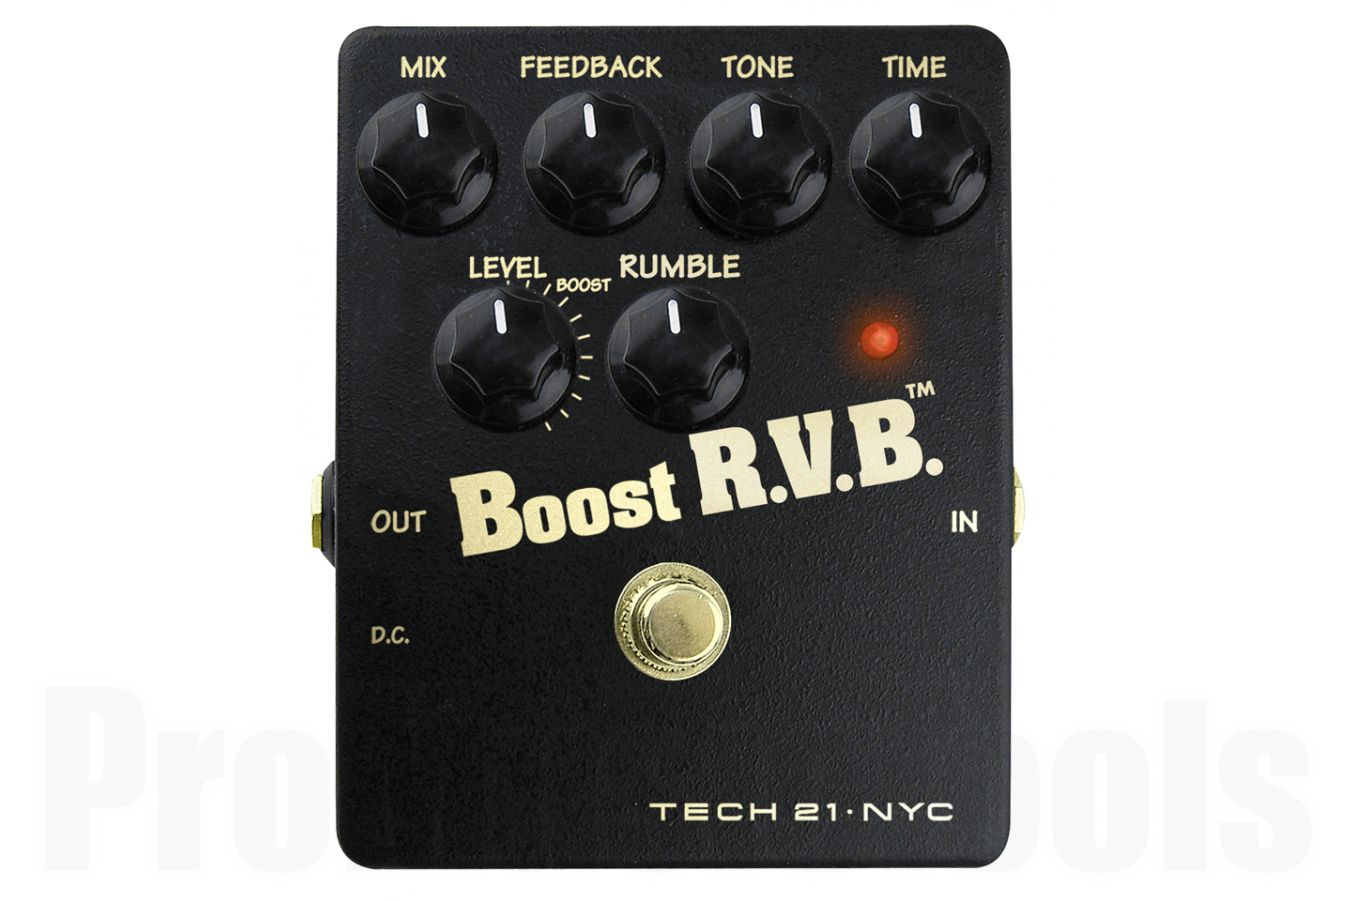 Tech 21 USA Boost R.V.B.